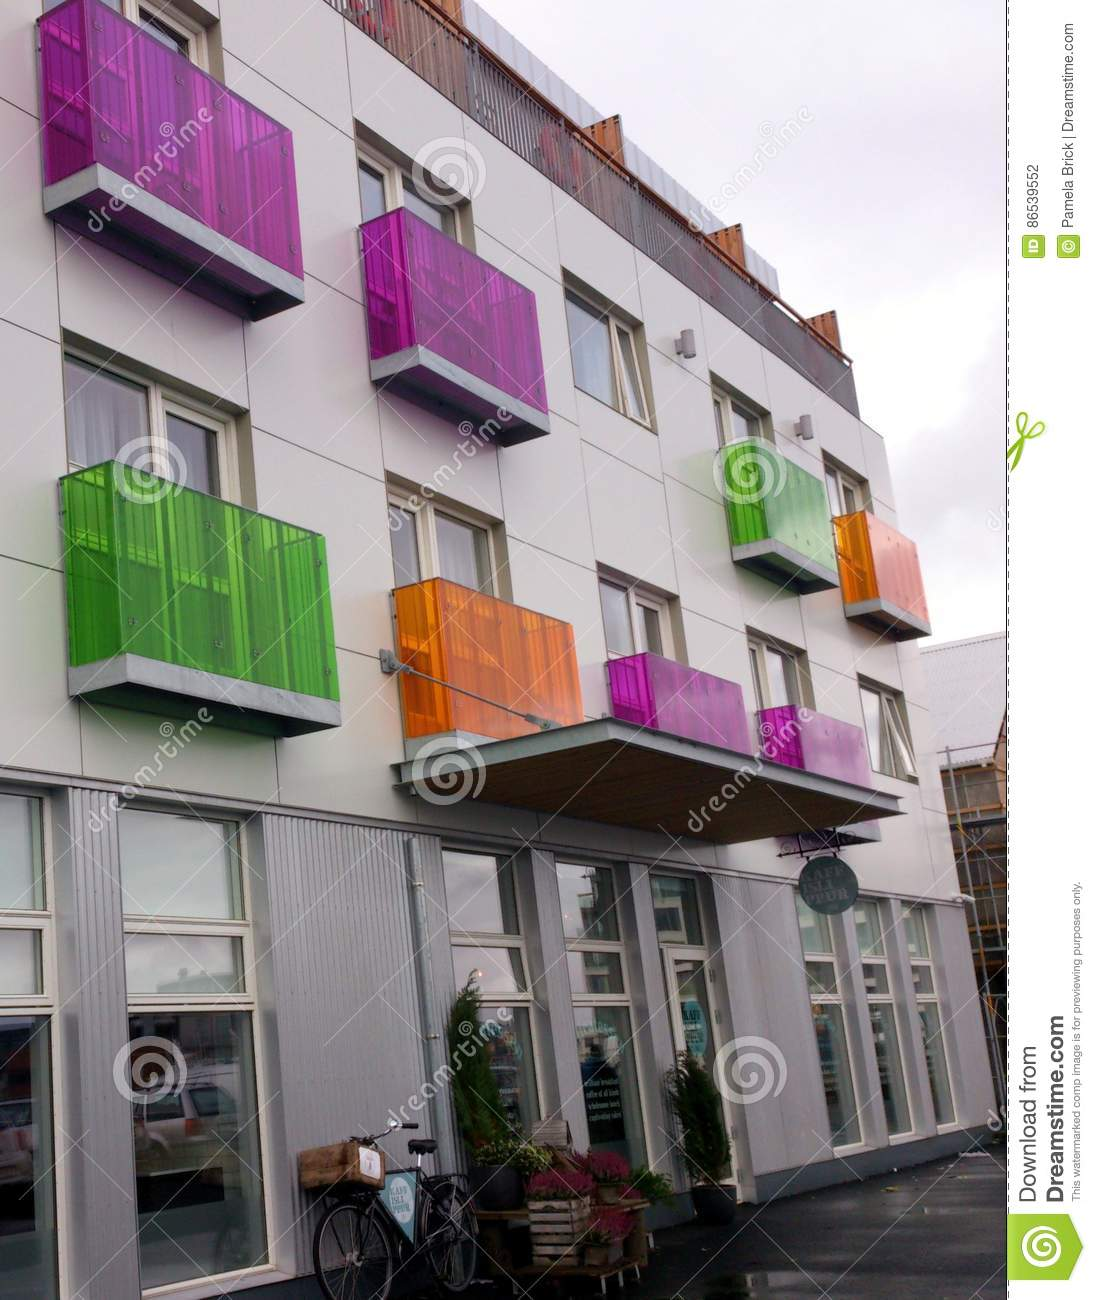 Colorful Apartment Building in Reykjavík Iceland